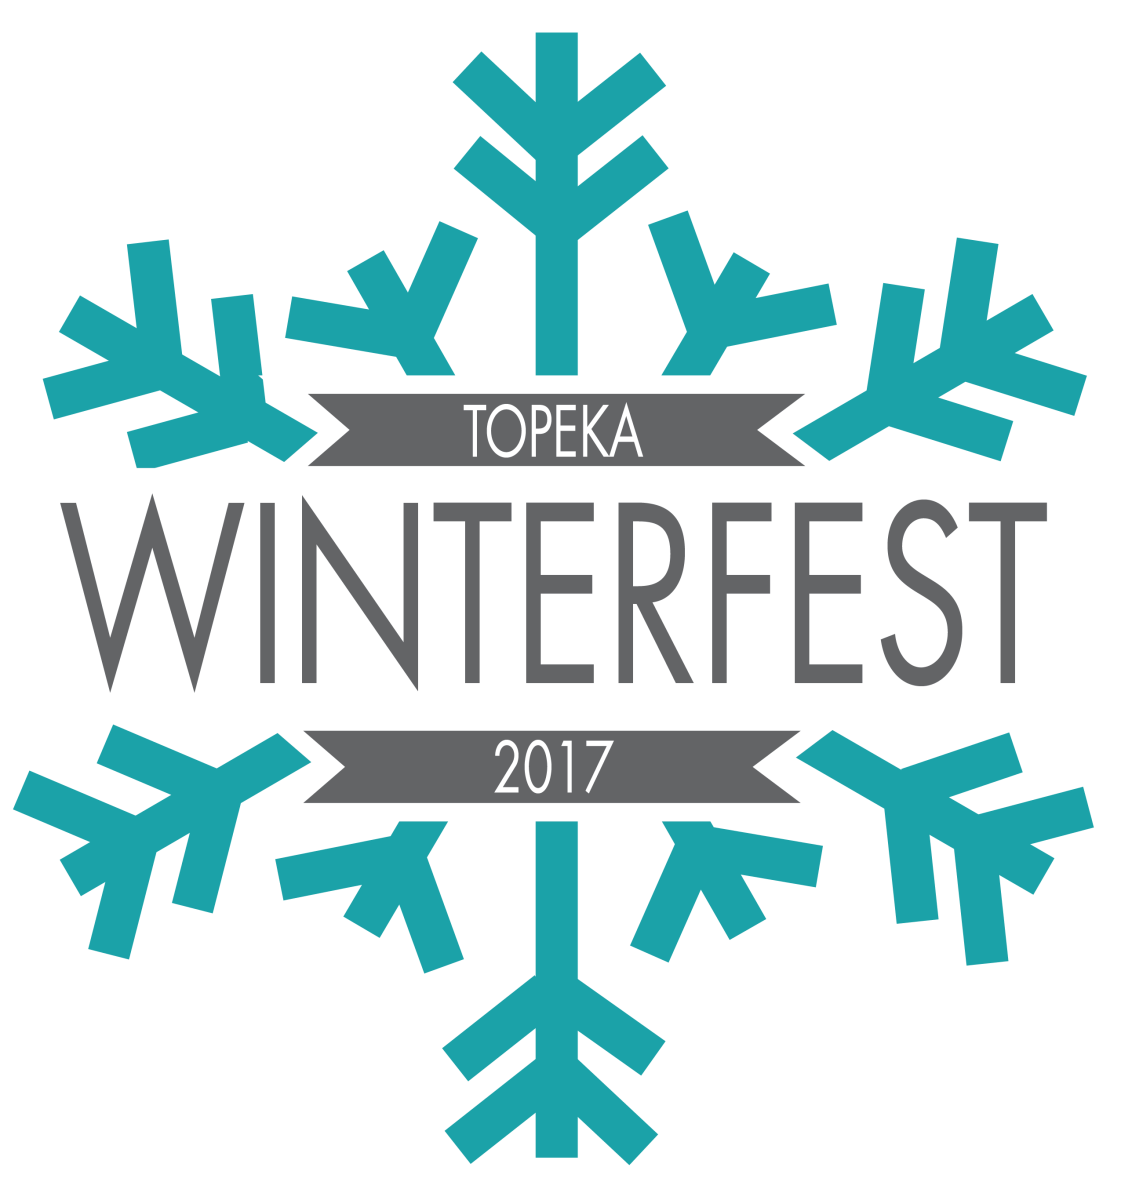 Winter clipart festival. Topeka winterfest downtown holiday